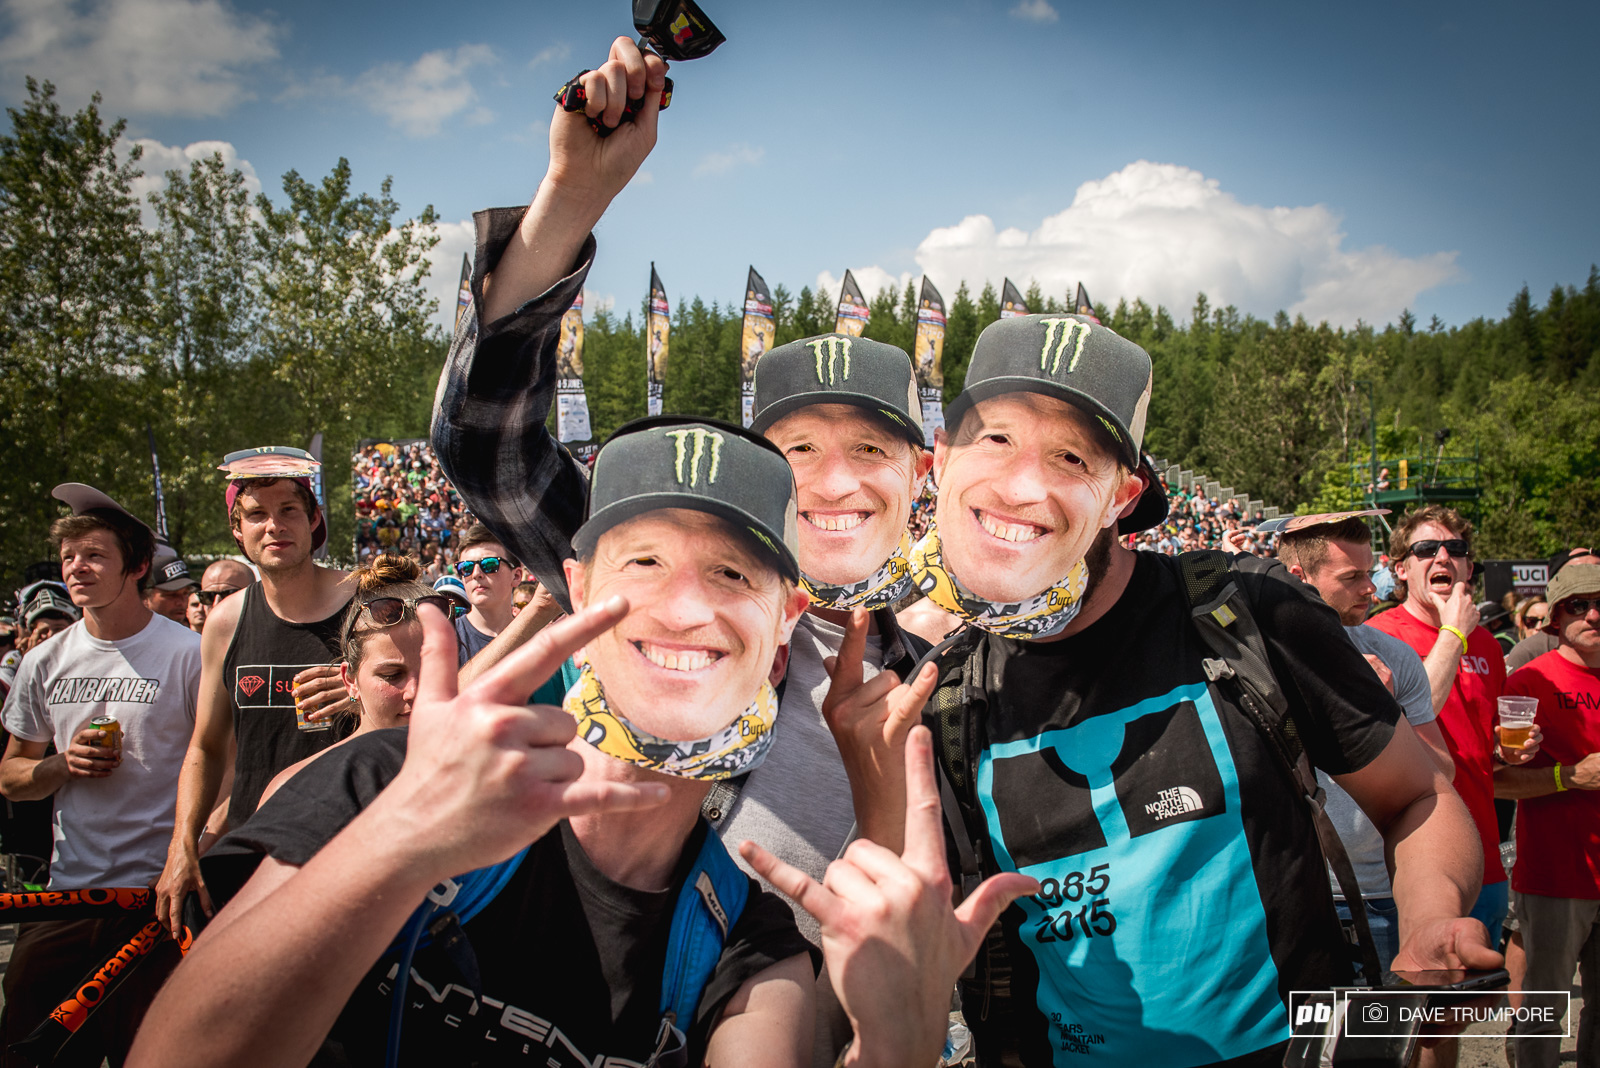 Being Steve Peats last race in Fort William the organizers had a surprise for him.